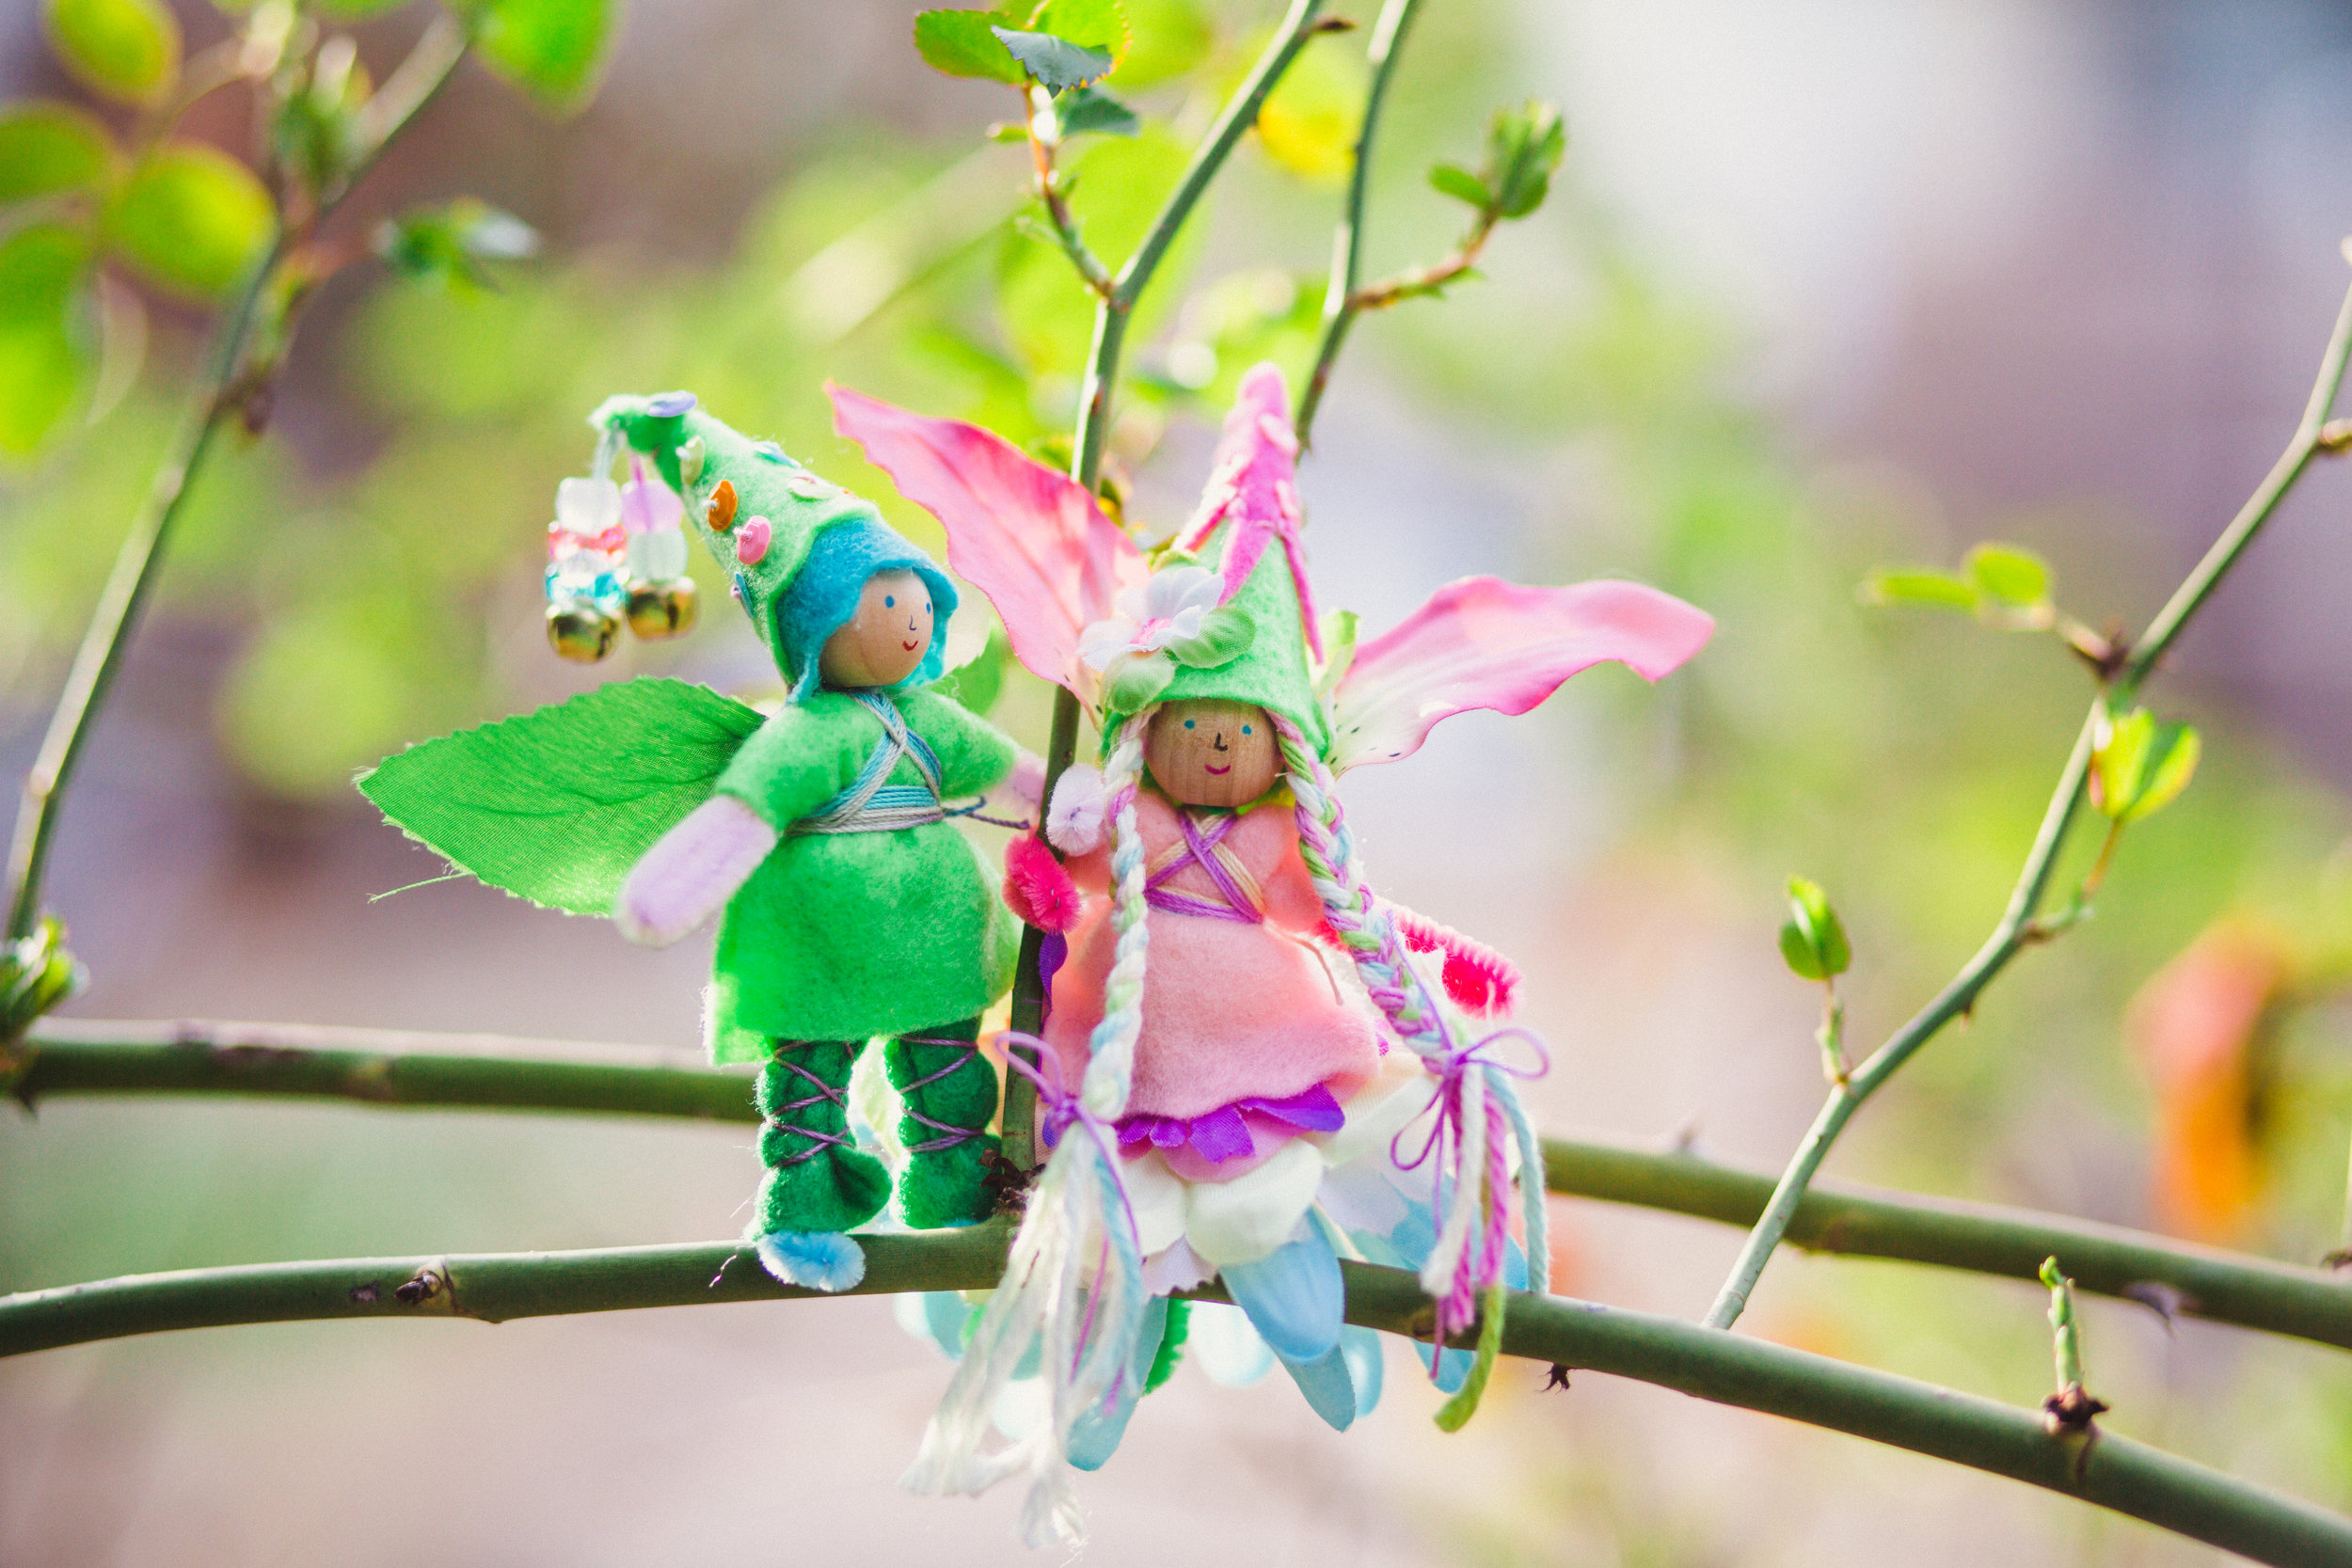 Fairy Bendy Doll for Spring | Learn to make your own enchanted crafts with simple supplies with the Forest Fairy Craft books by Lenka Vodicka-Paredes and Asia Currie